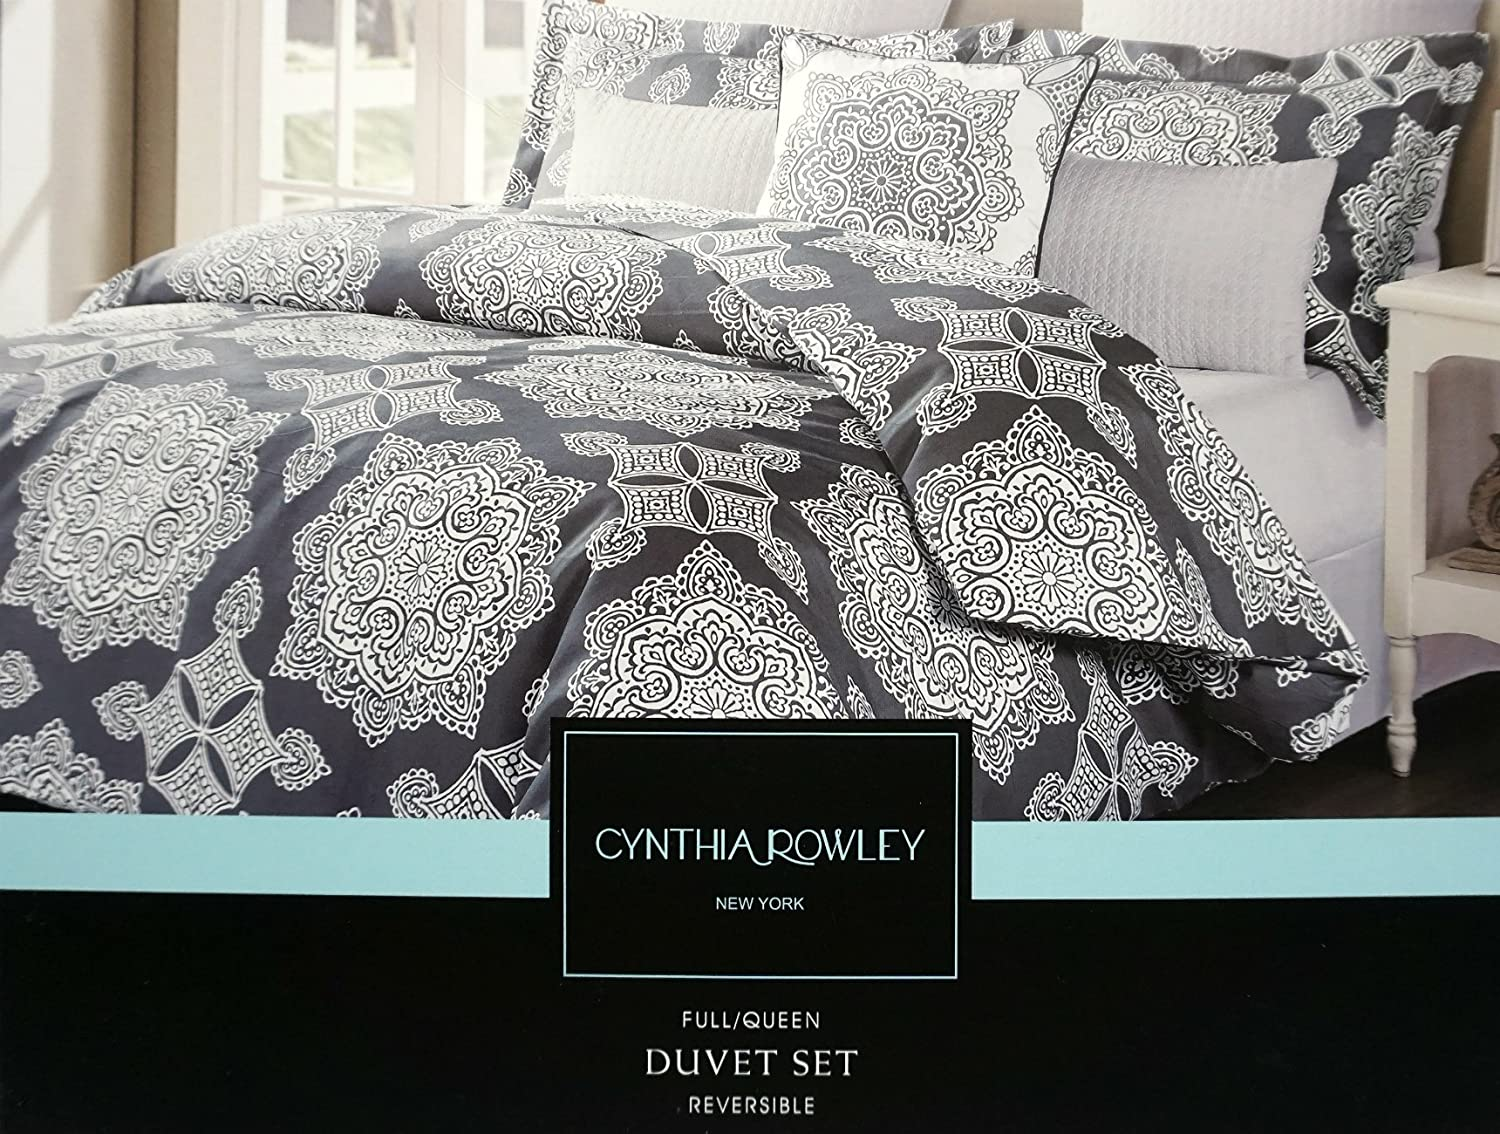 cynthia rowley full queen size duvet cover 3 piece set dark grey charcoal gray and white - Queen Size Duvet Cover